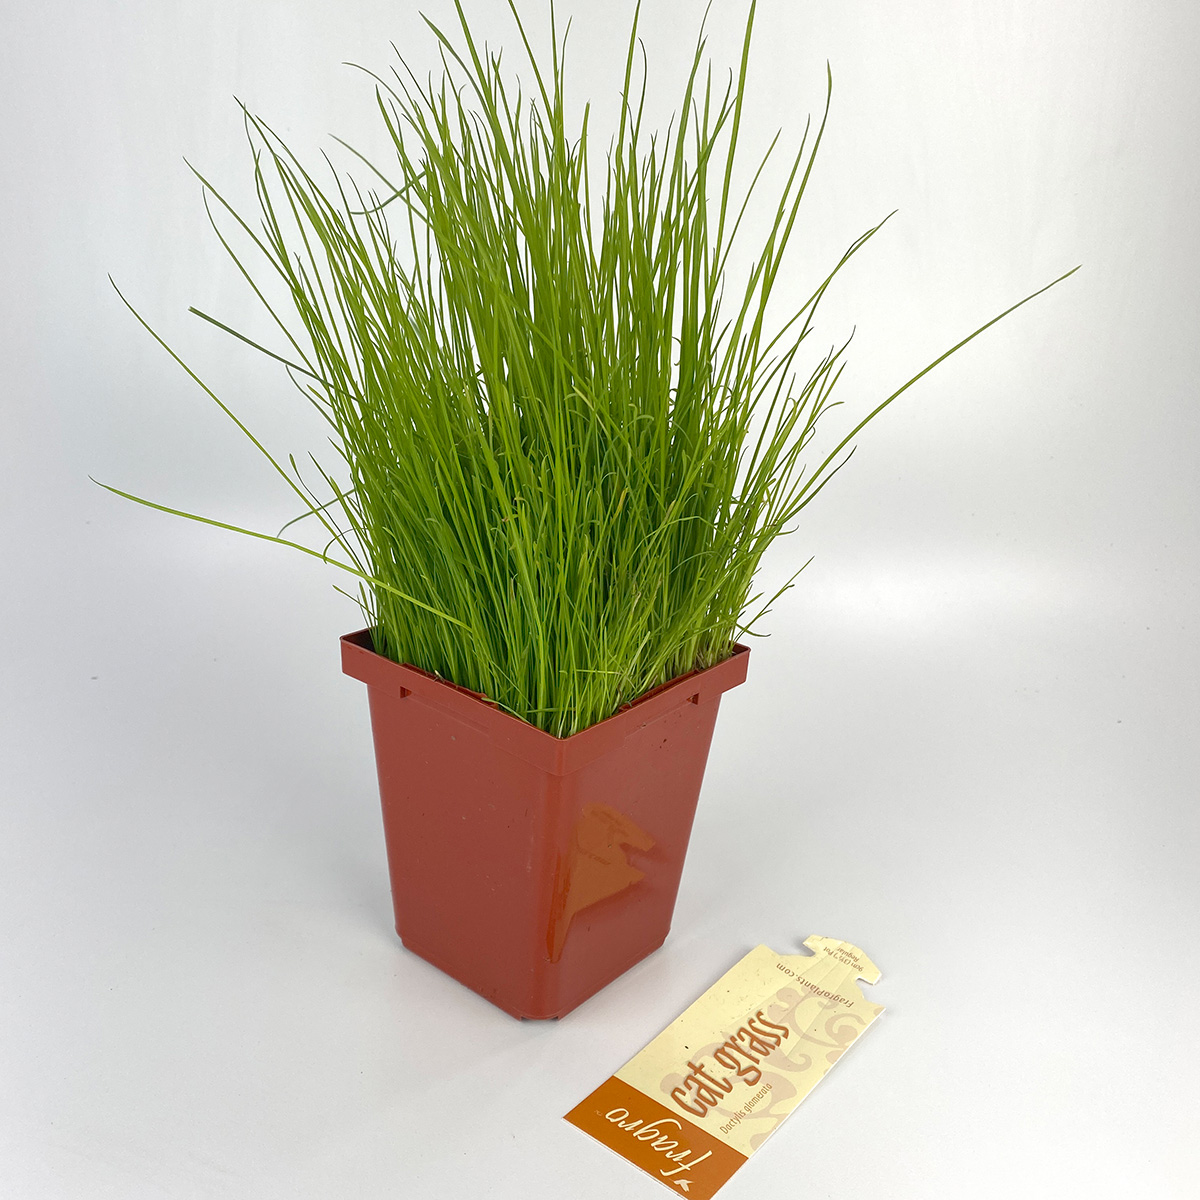 Catgrass_4in.jpg